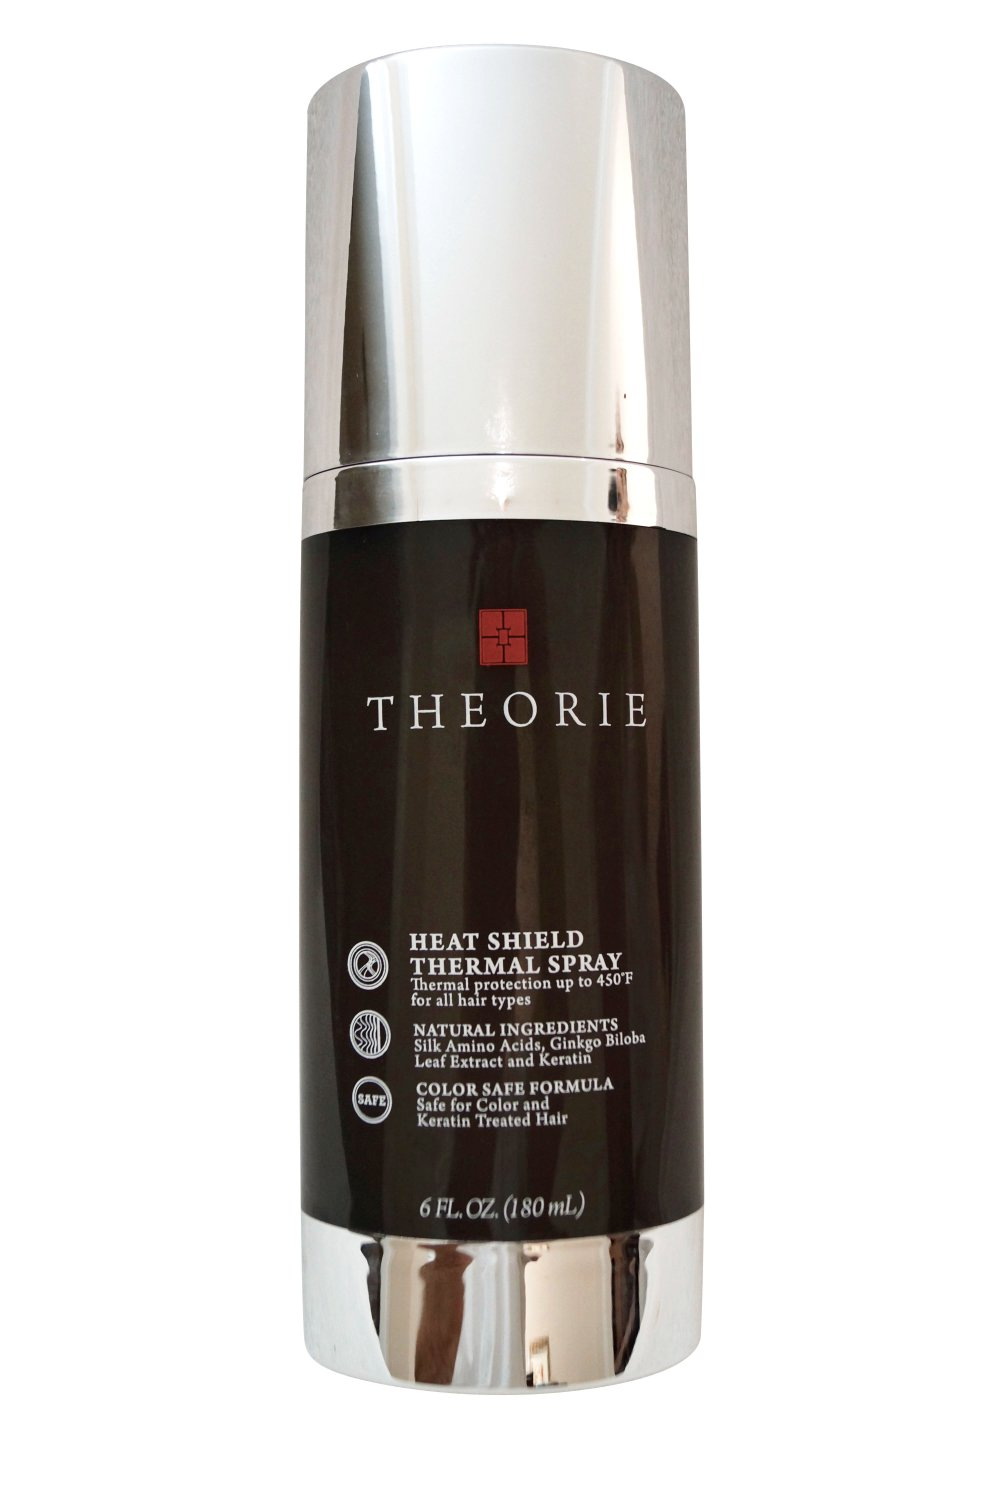 Theorie Heat Shield Thermal Spray, 180 ml.